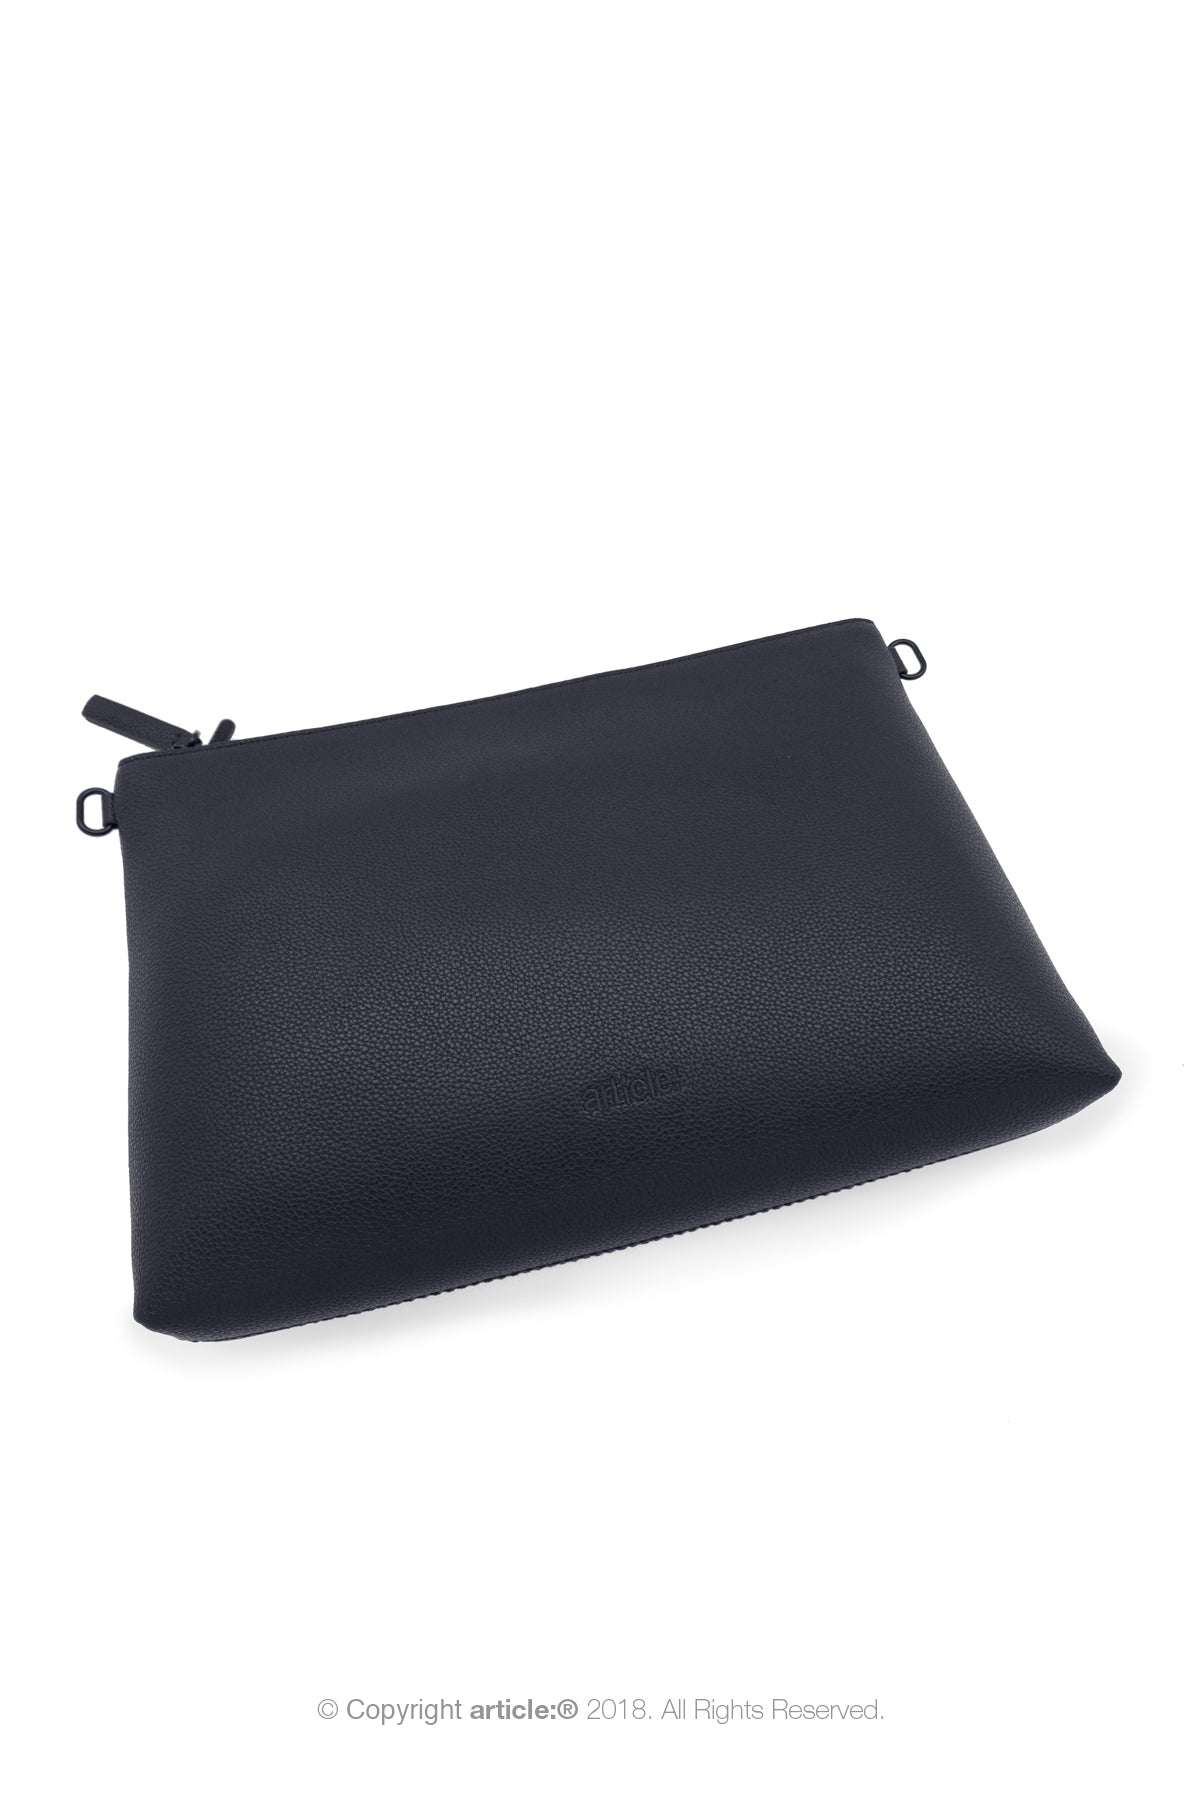 article: #073 Pochette Grande Gusset Men - Indigo